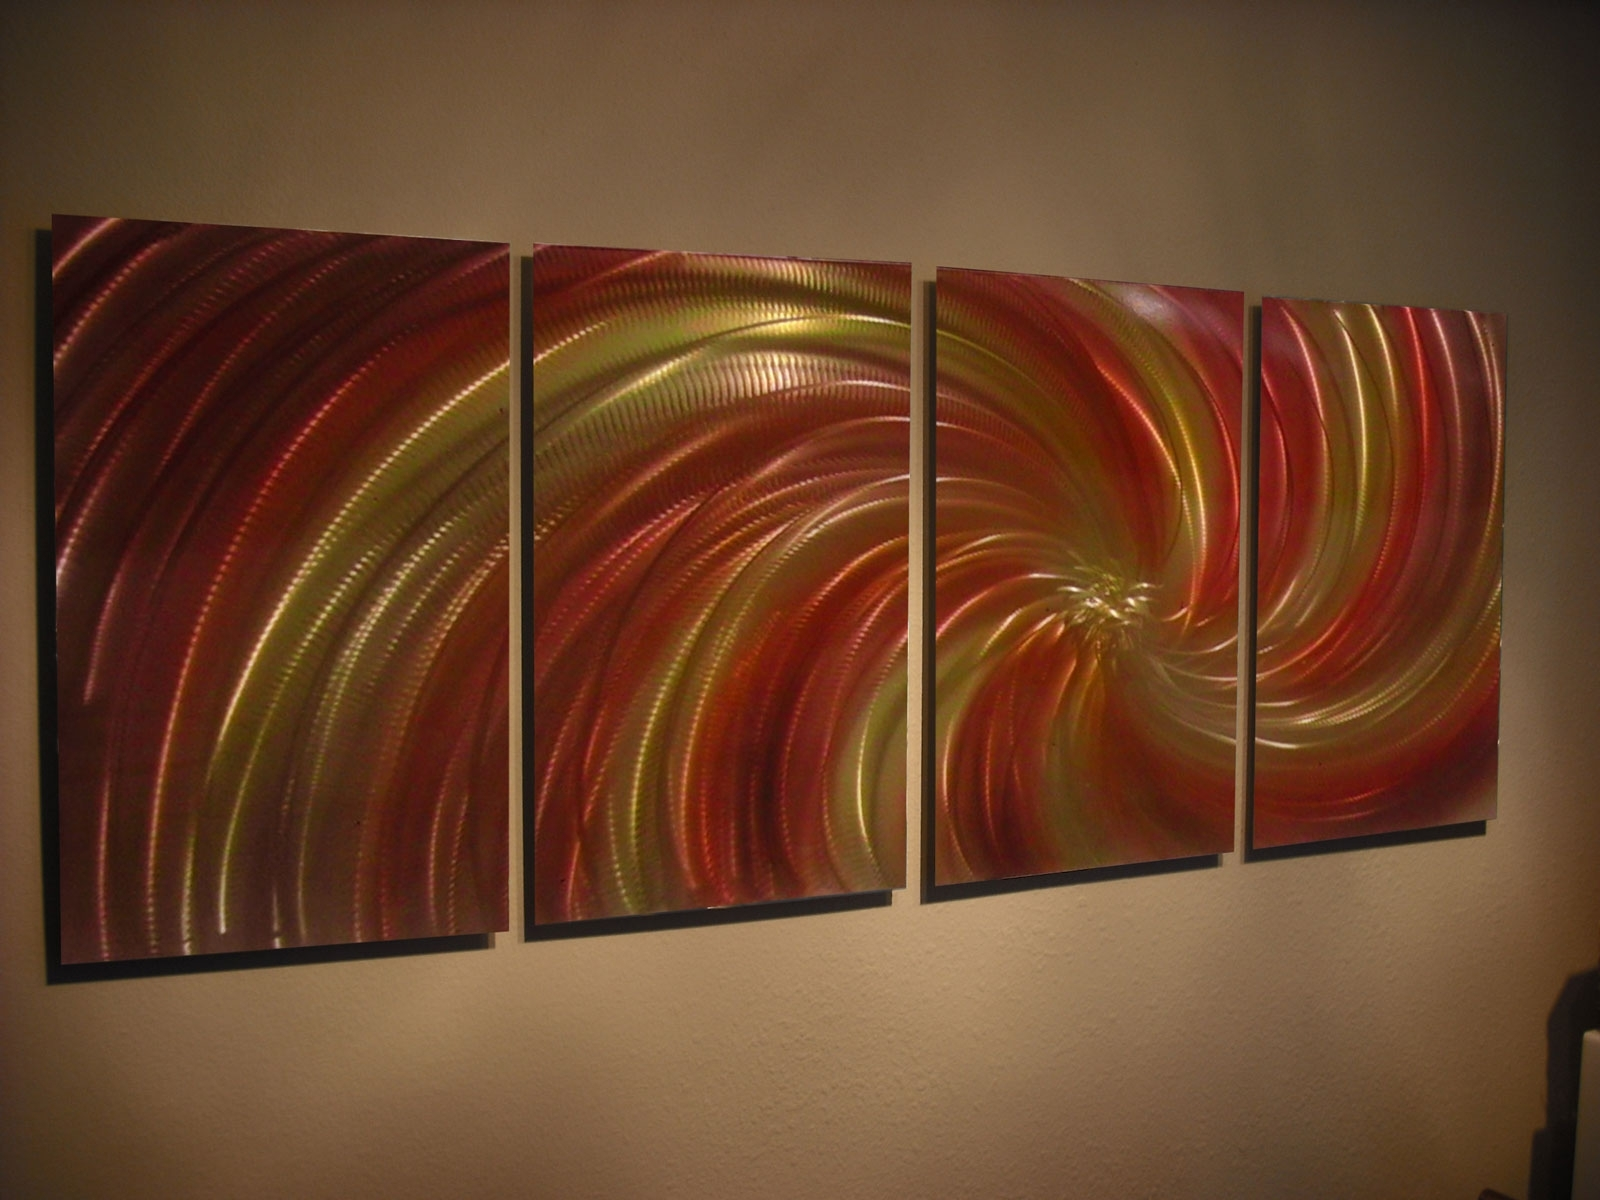 Harvest – Abstract Metal Wall Art Contemporary Modern Decor Regarding 2018 Brown Abstract Wall Art (Gallery 4 of 20)